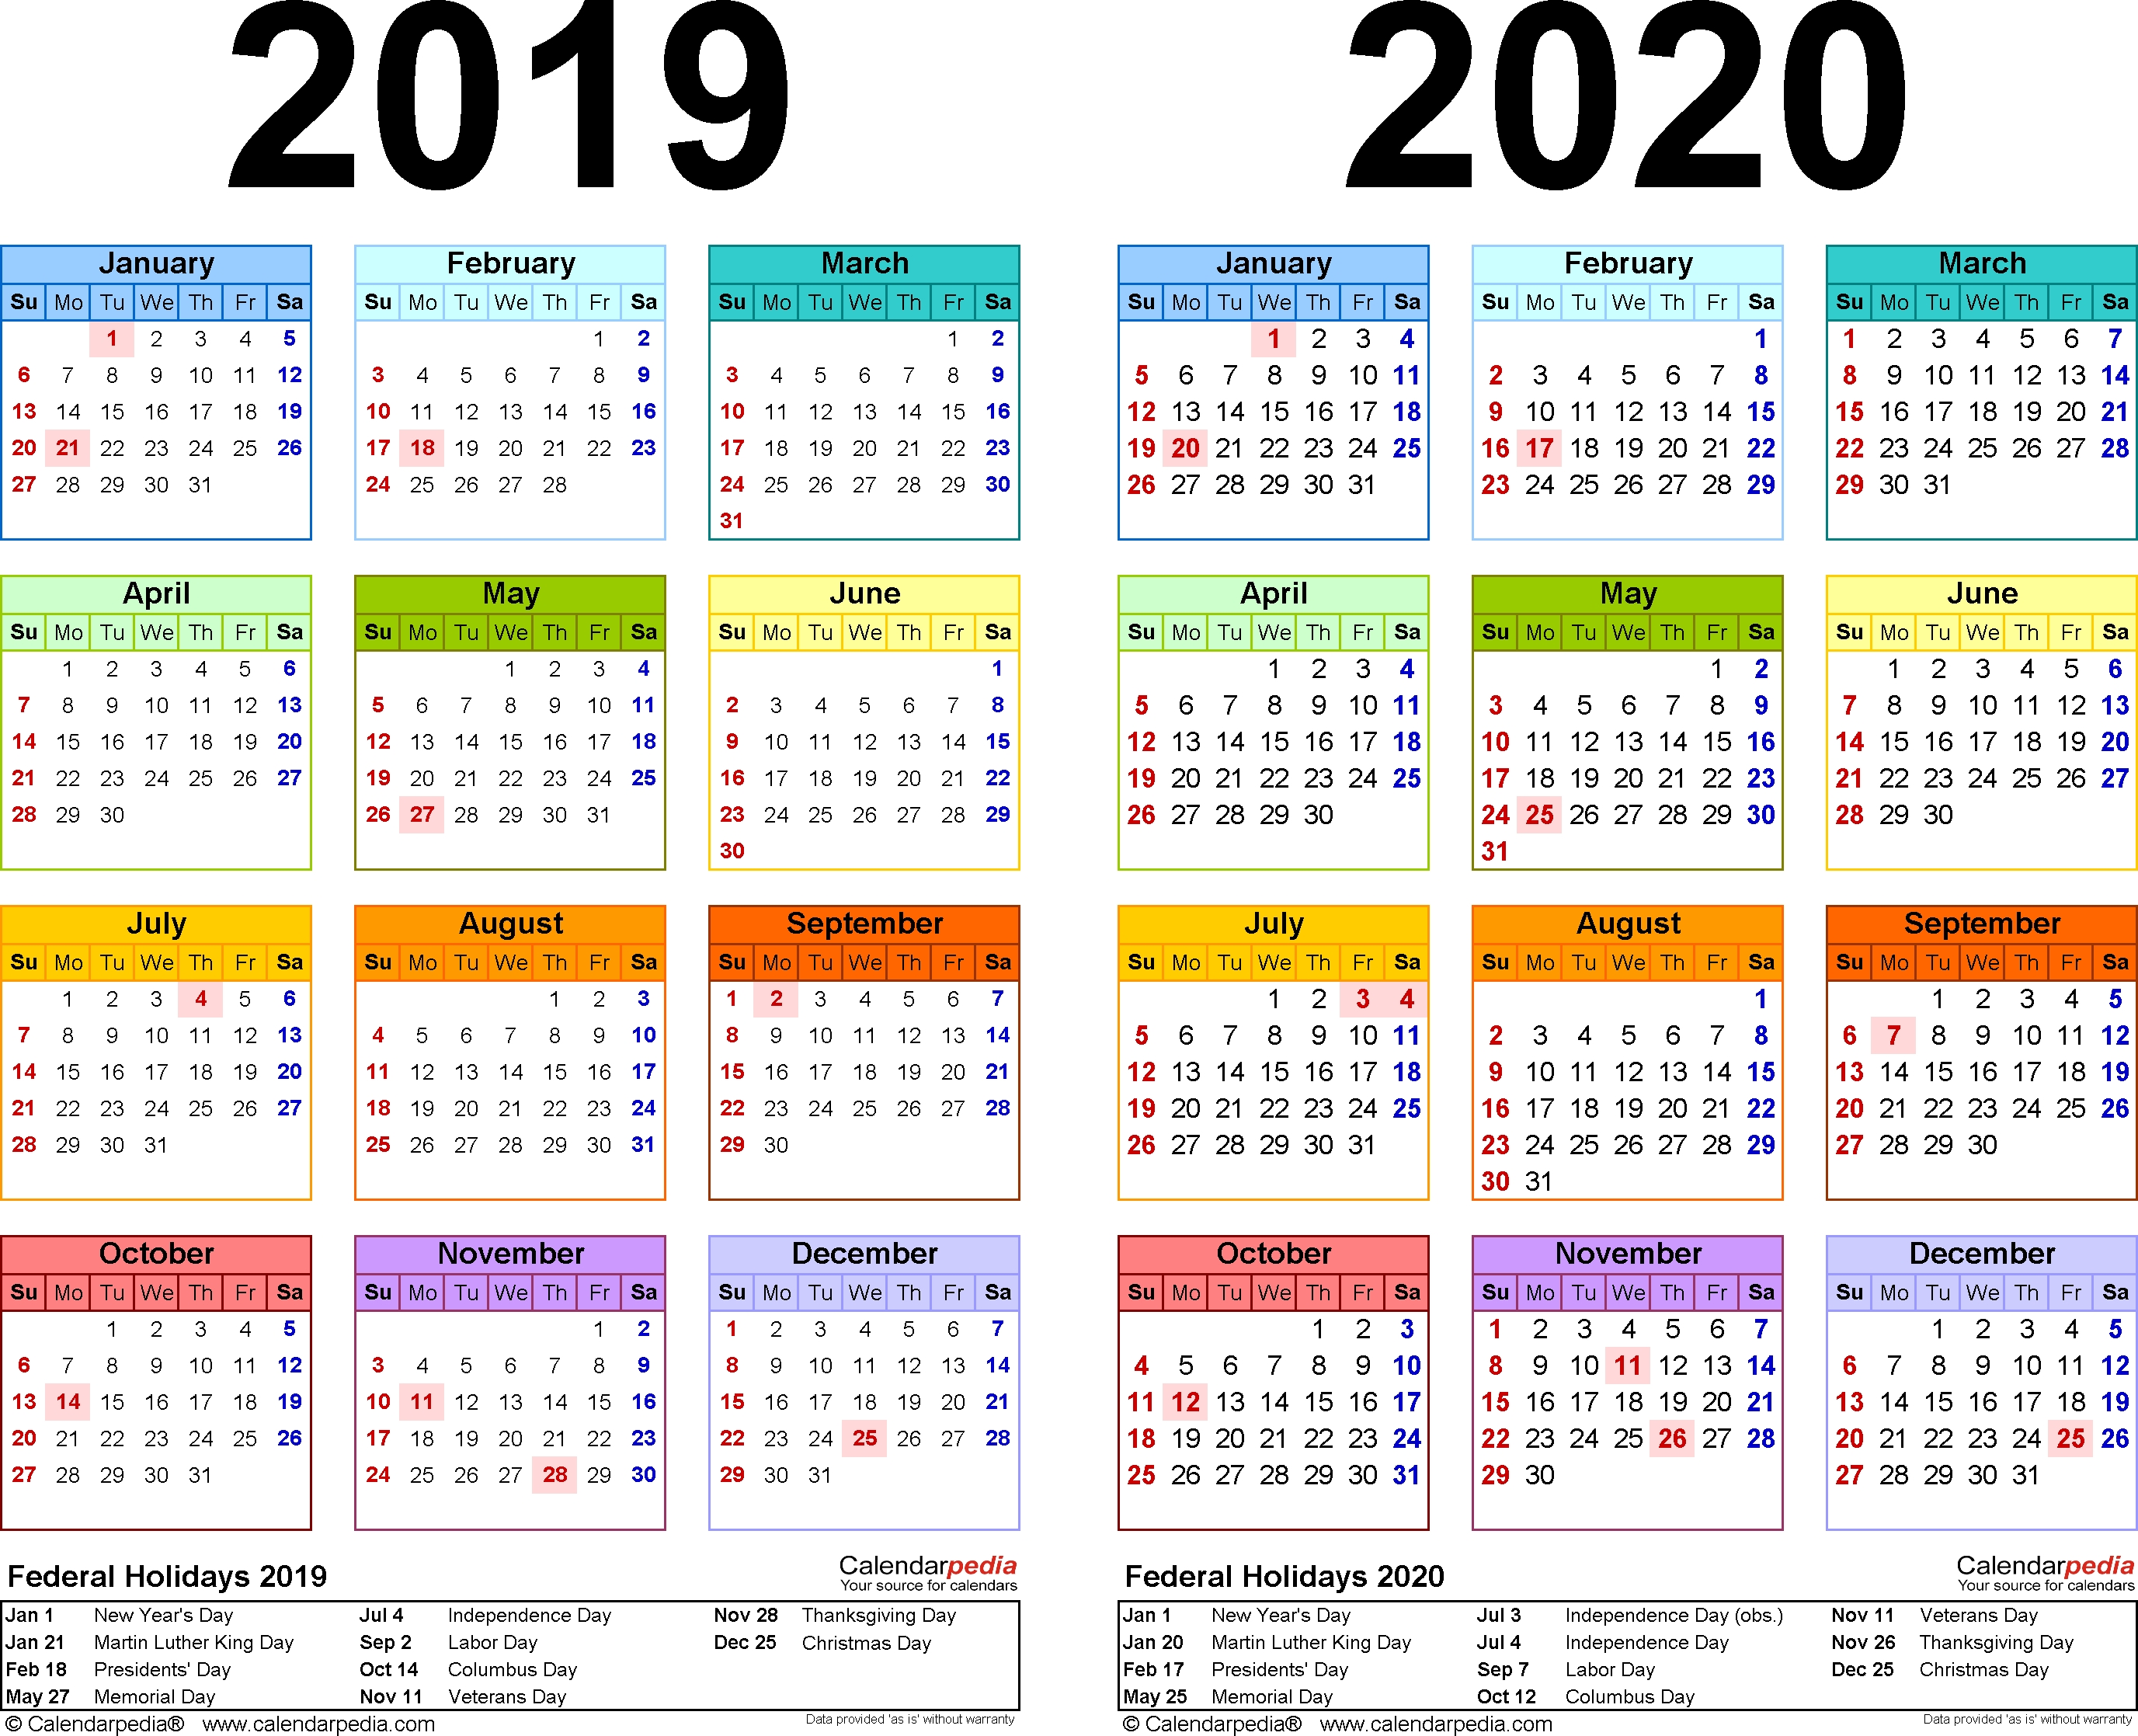 2019-2020 Calendar - Free Printable Two-Year Pdf Calendars in Calendar At A Glance 2019-2020 Printable